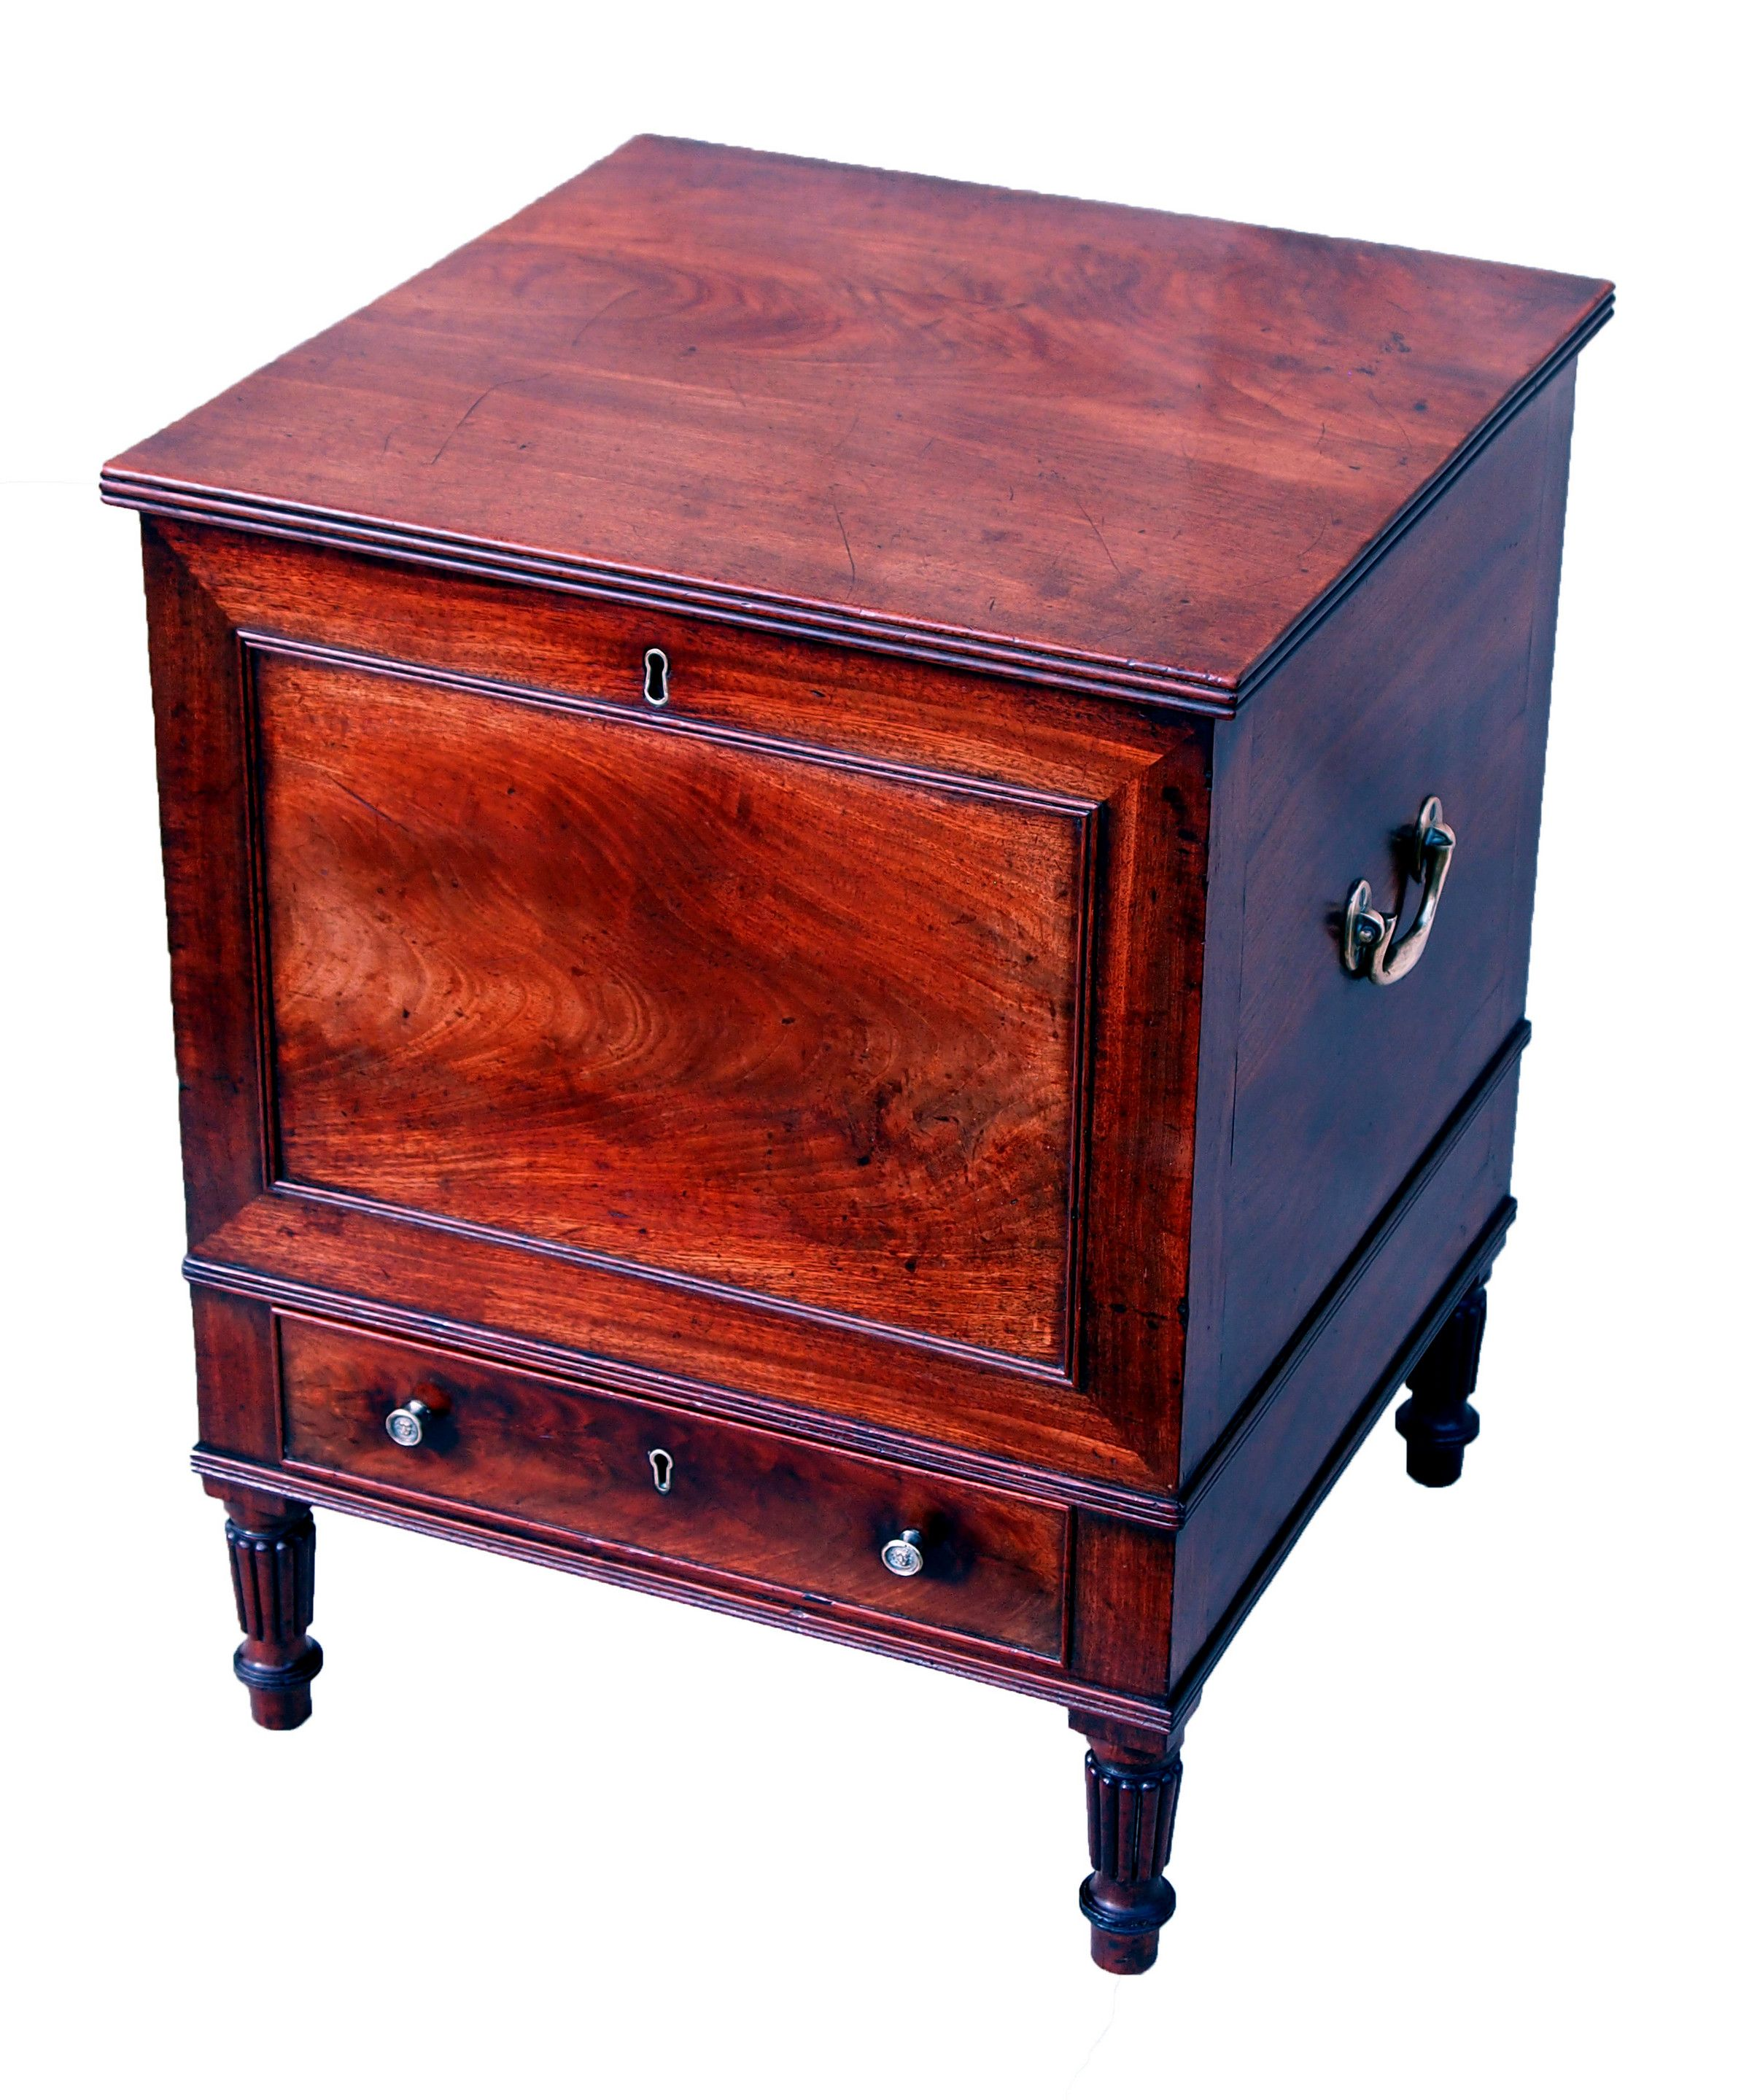 Antique Regency mahogany cellarette (England c. 1820) offered by S & S Timms at The Edenbridge Galleries, Kent. www.edenbridgegalleries.com